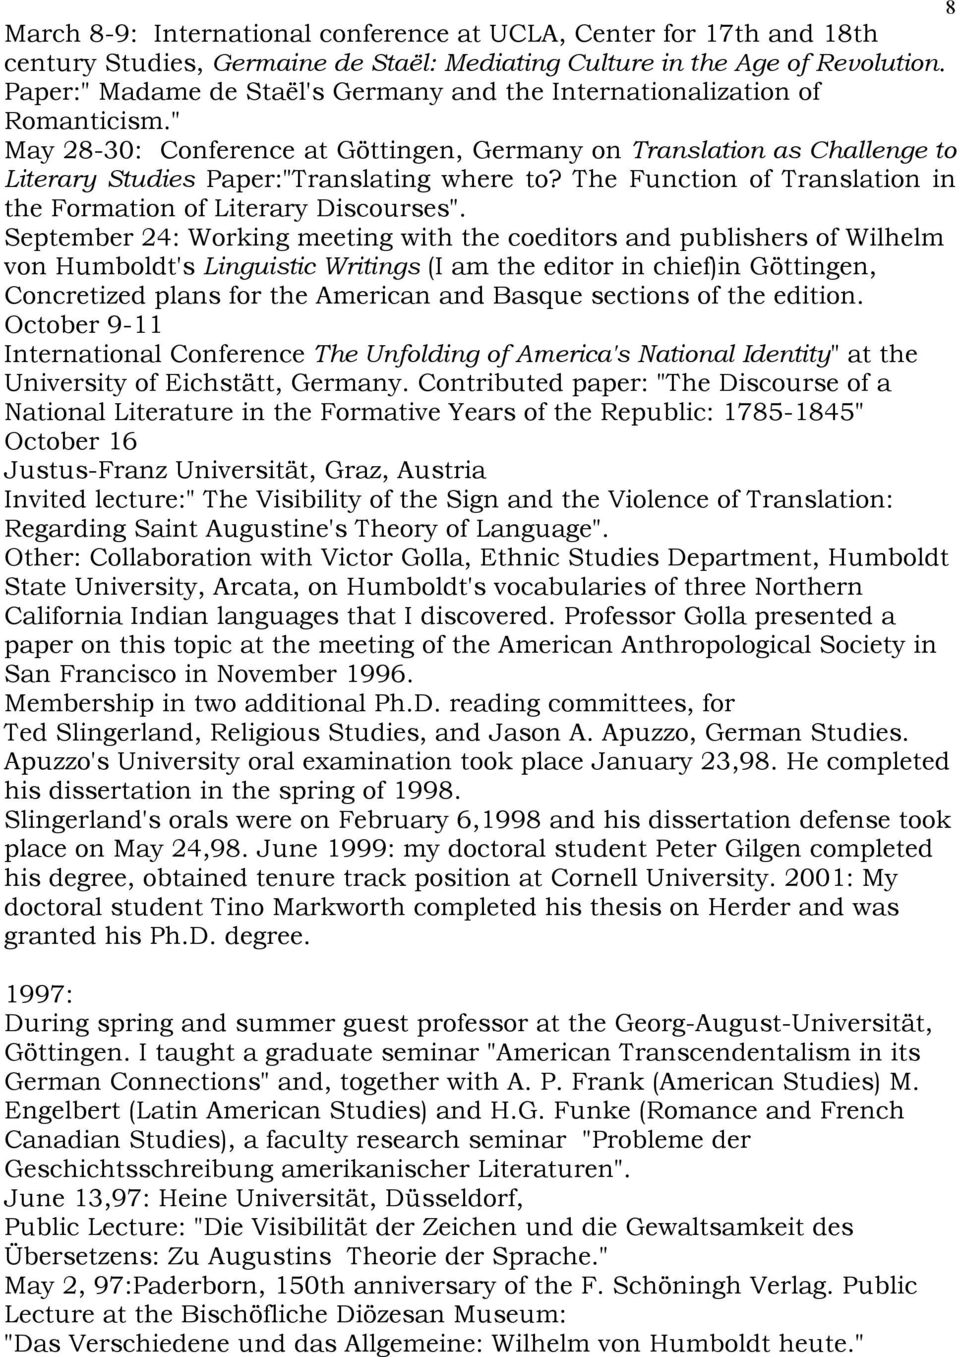 "The Function of Translation in the Formation of Literary Discourses""."